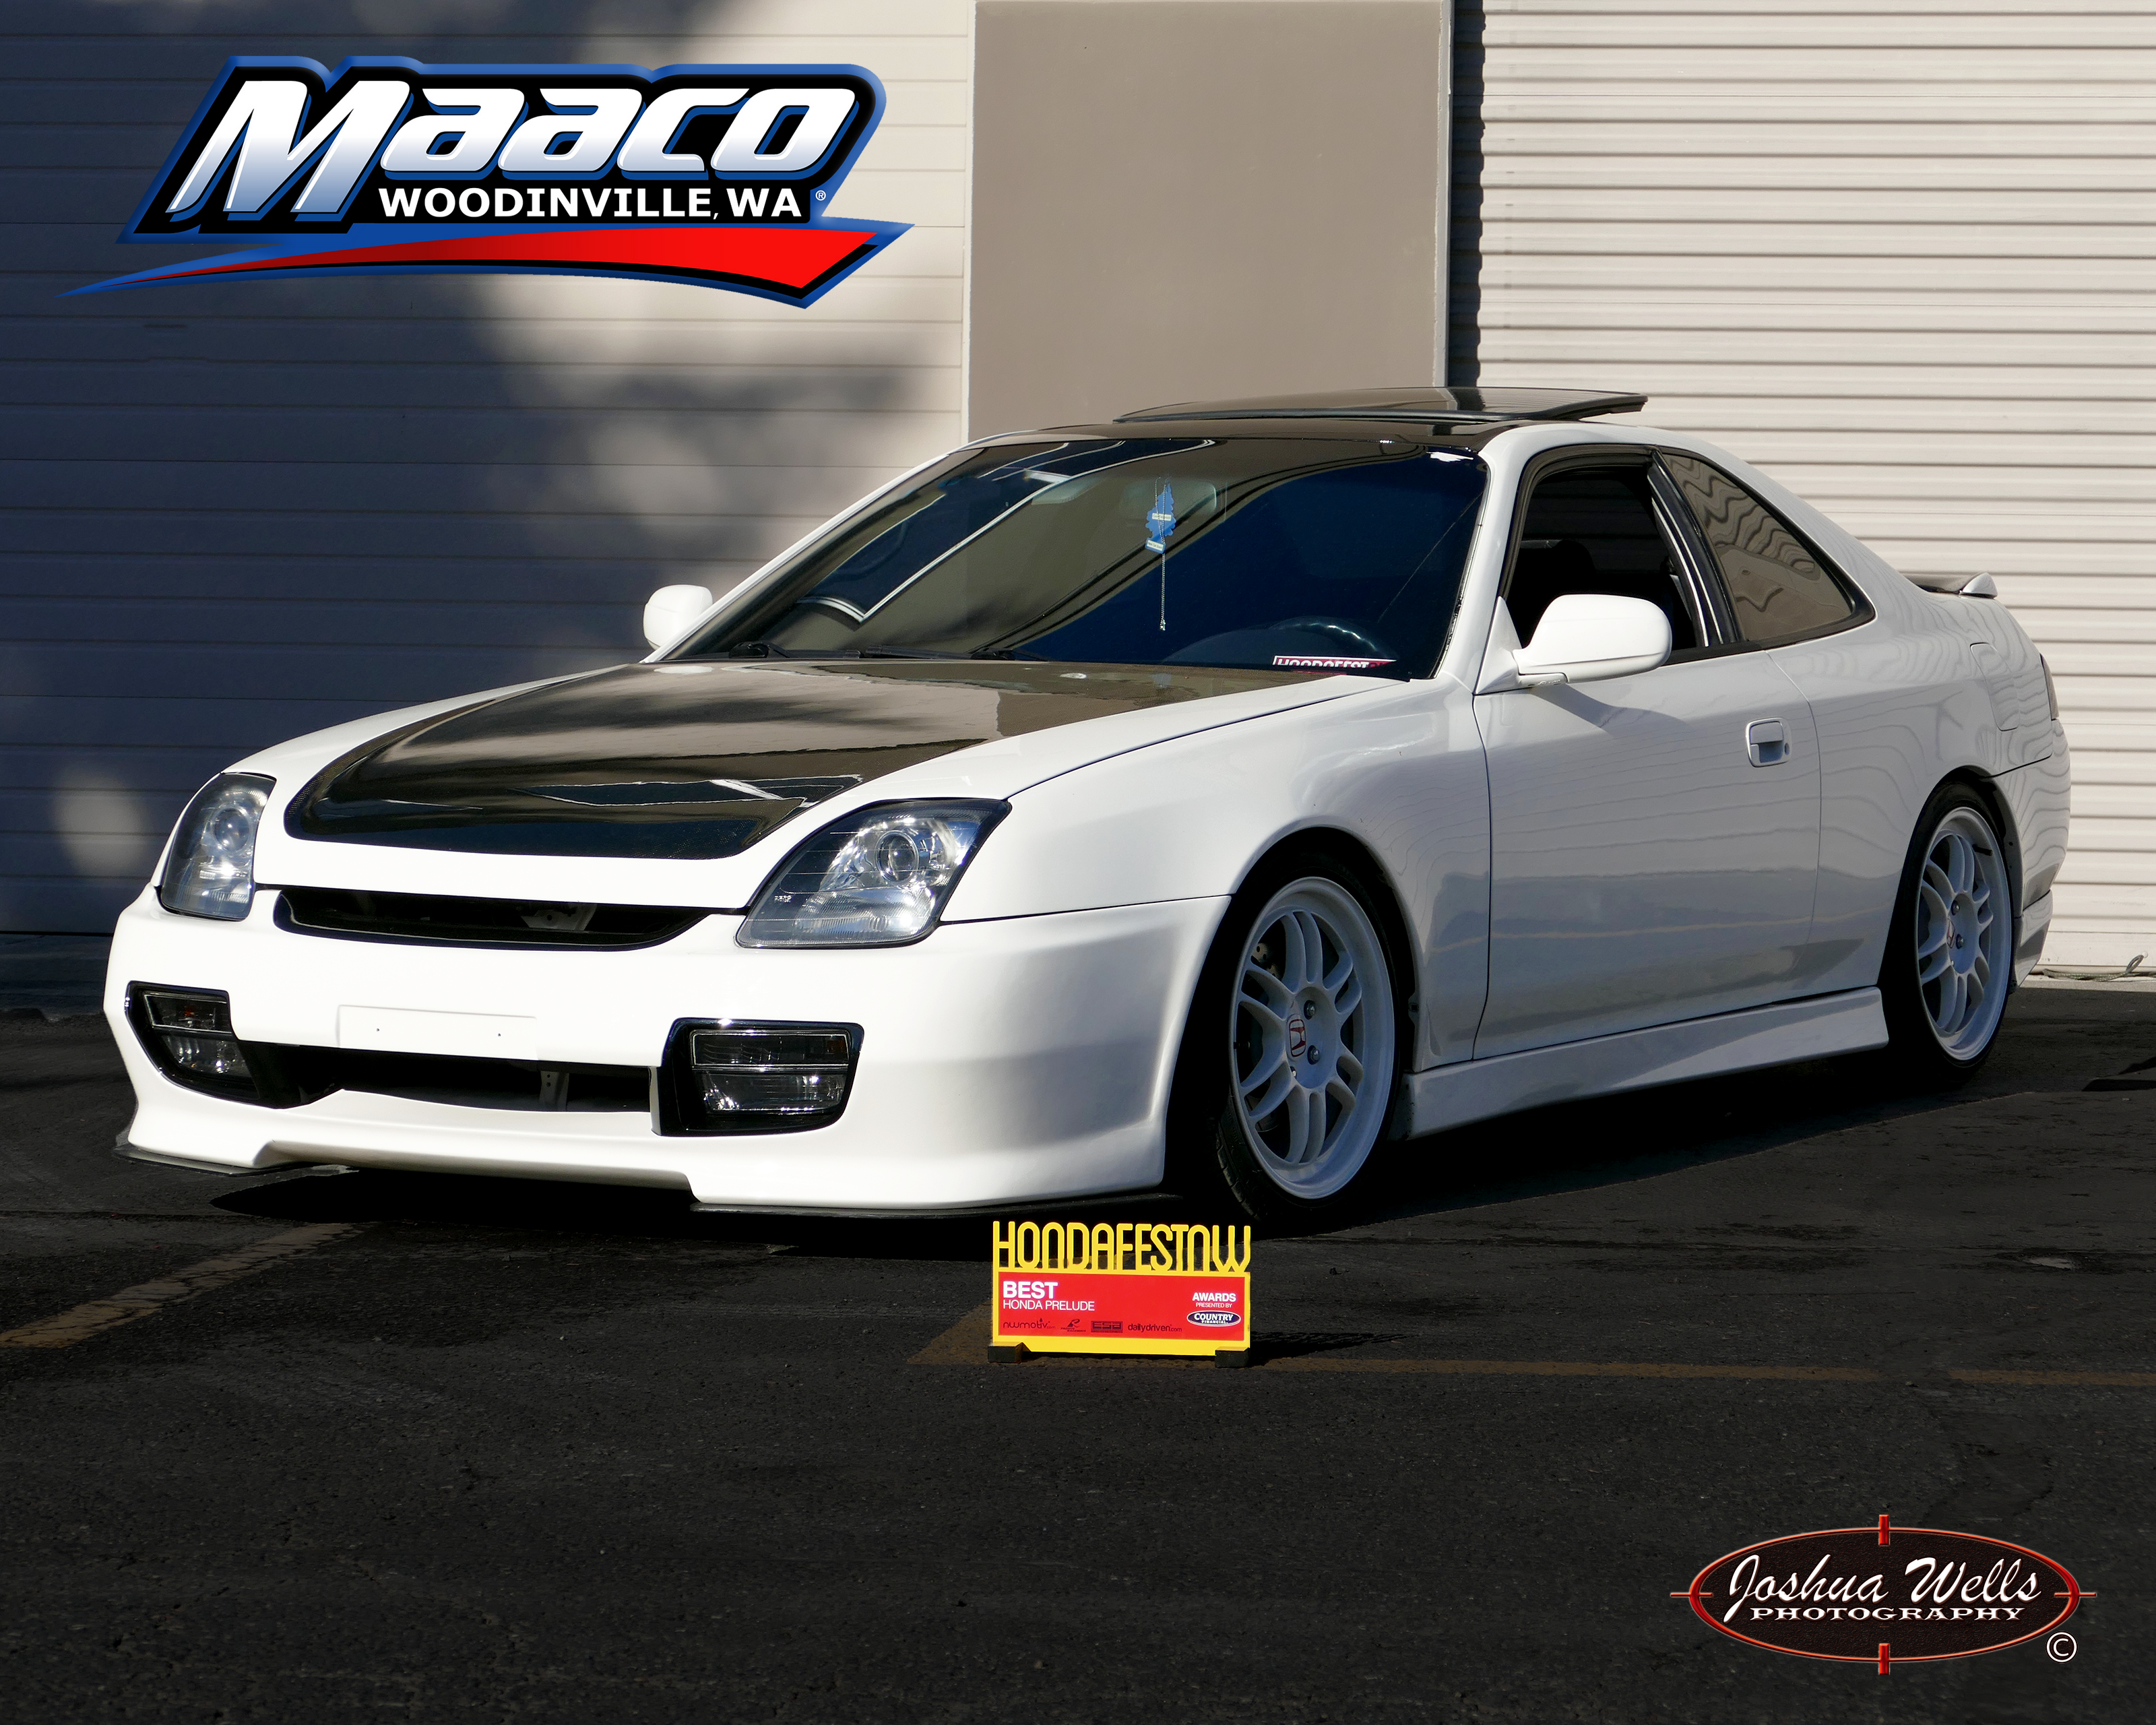 Paint Job For Cars Near Me >> Maaco Collision Repair & Auto Painting Coupons near me in Woodinville | 8coupons